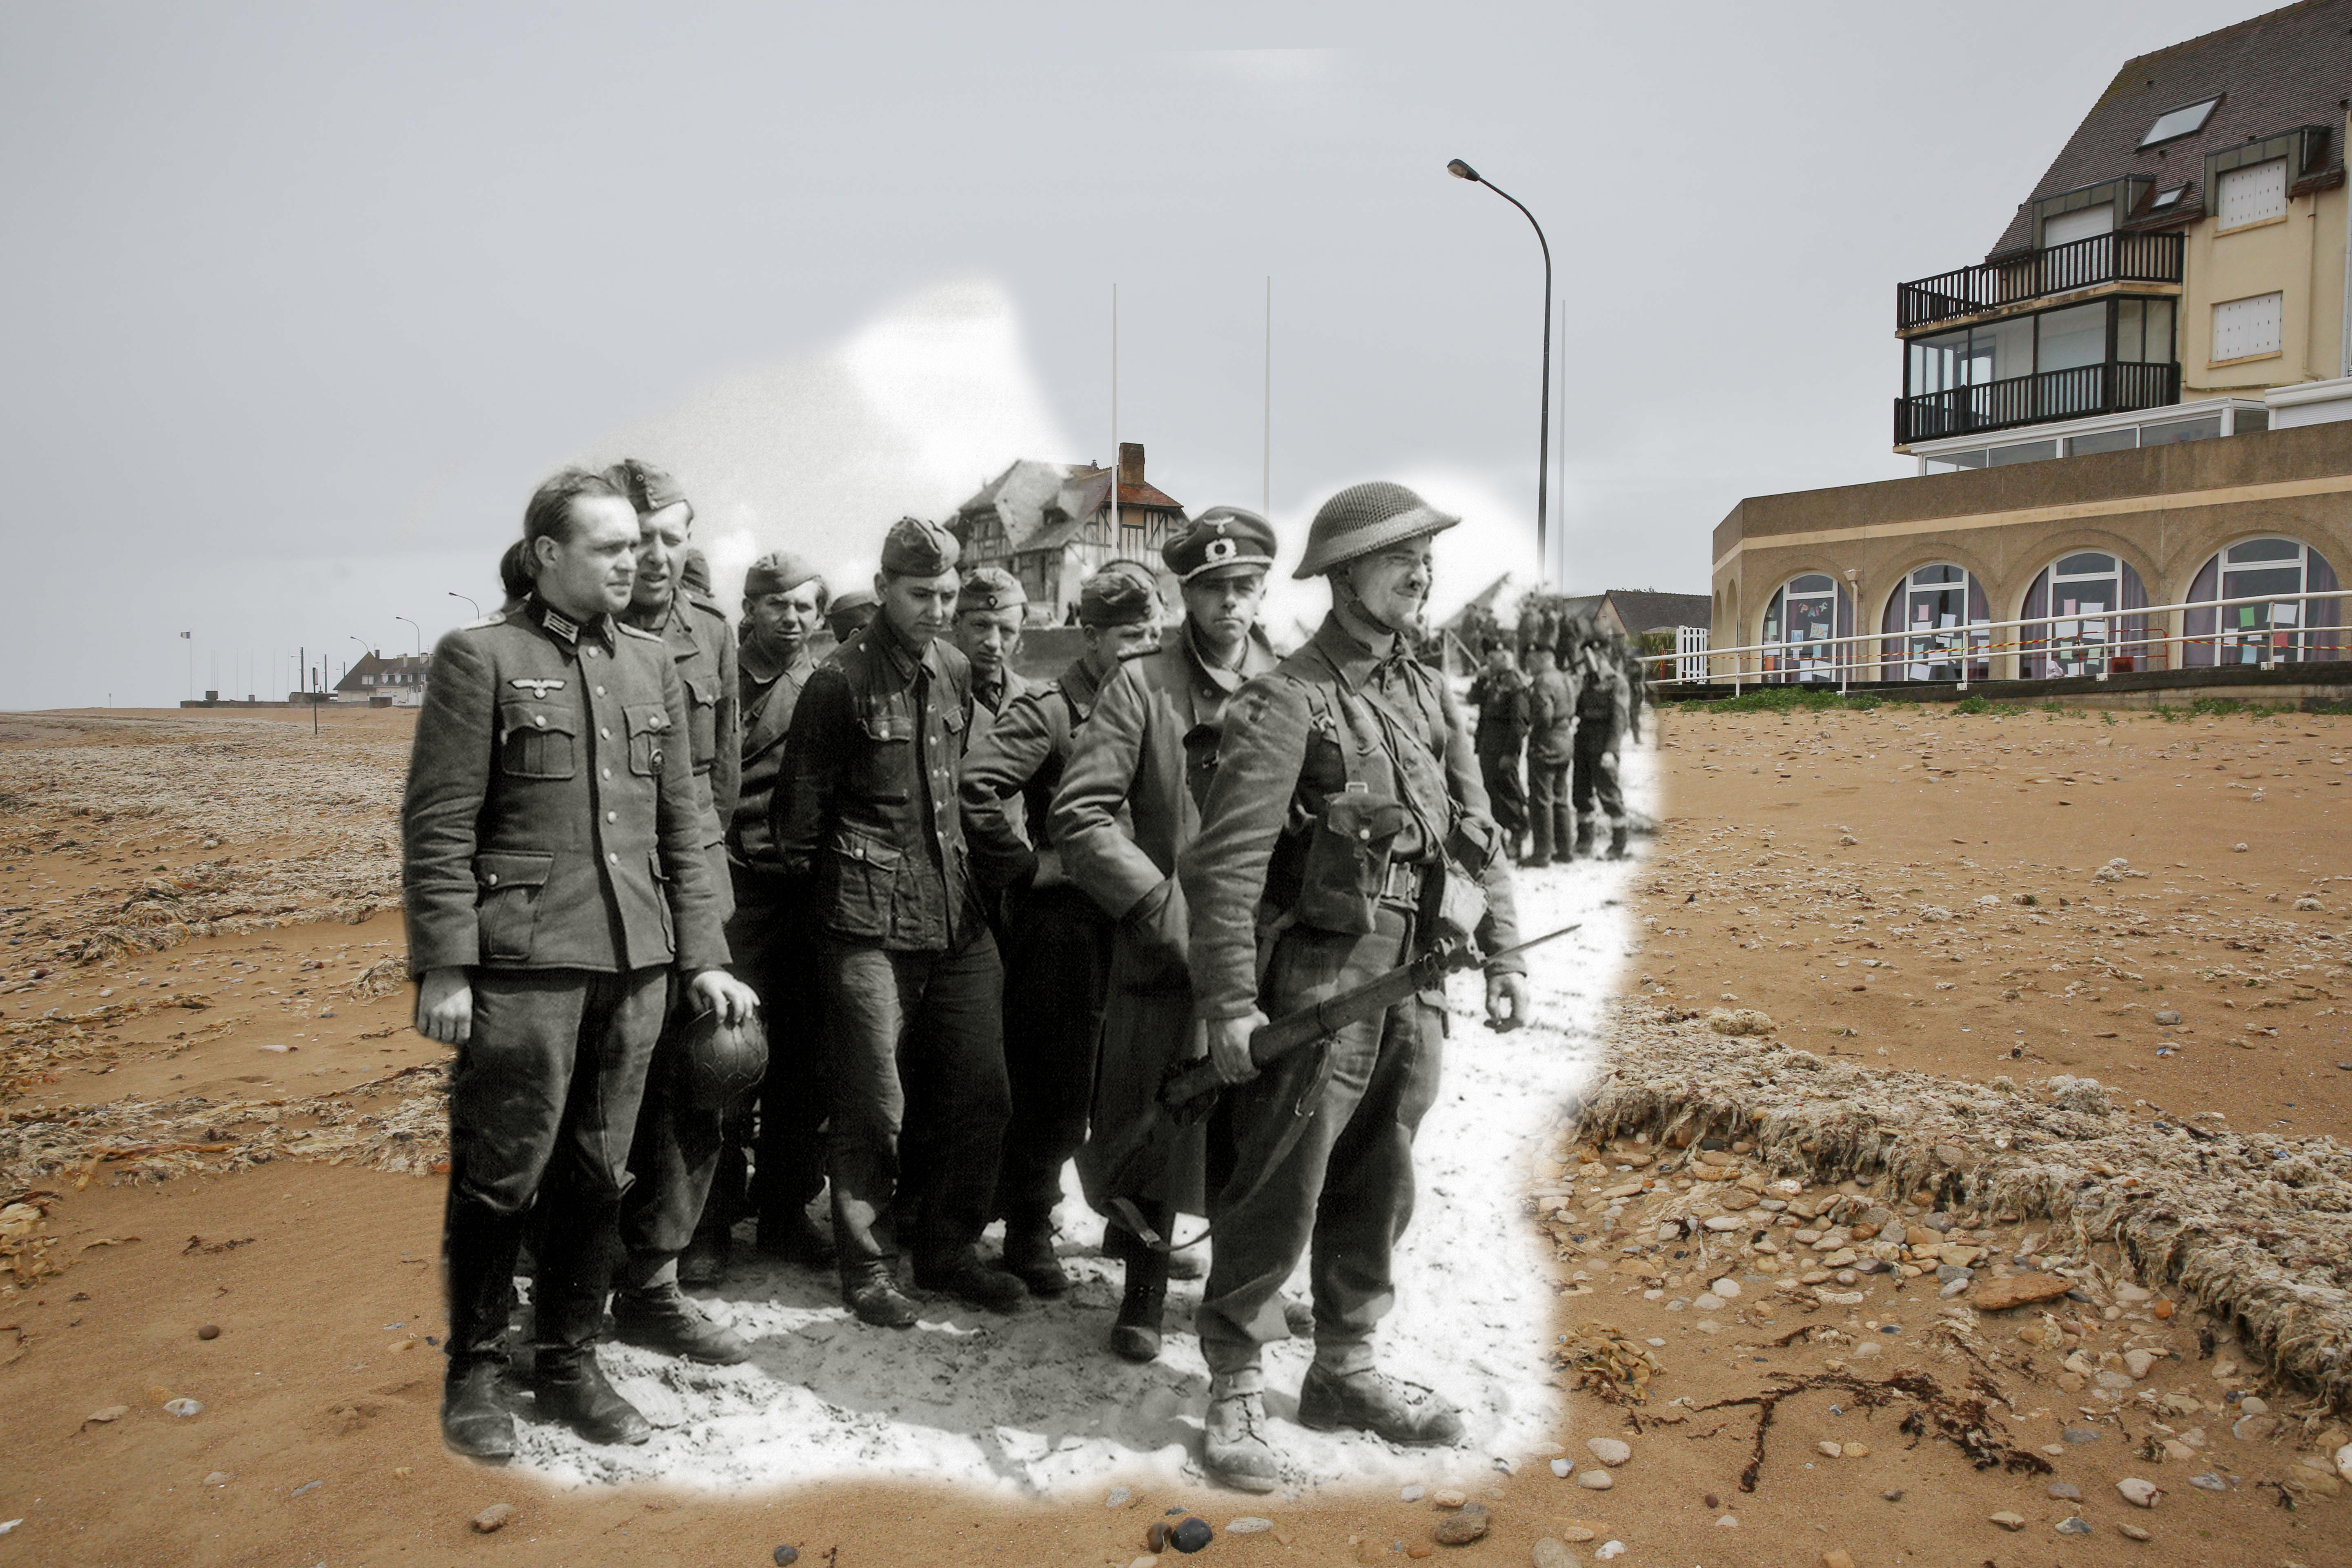 A view of Juno Beach on May 8, 2014 in Bernieres sur Mer, France. Overlay: A large number of German prisoners are gathered on the beach of Bernières-sur-Mer on June 1944. They are guarded by British soldiers from the 2nd Army on Juno Beach.